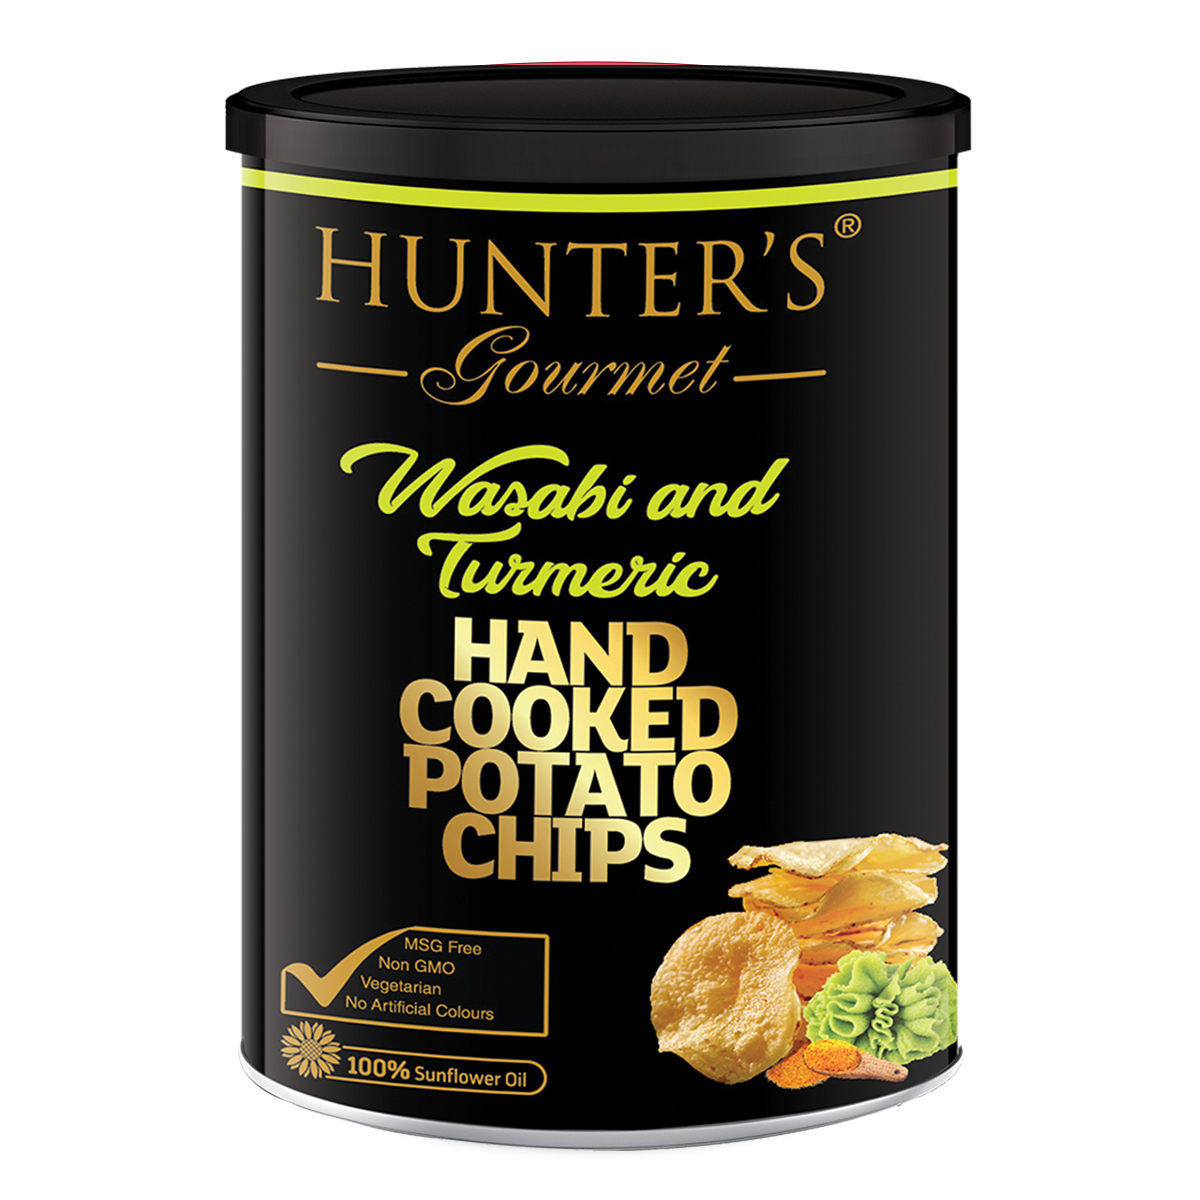 Hunter's Gourmet Hand Cooked Potato Chips - Wasabi and Turmeric - Gold line (150gm)